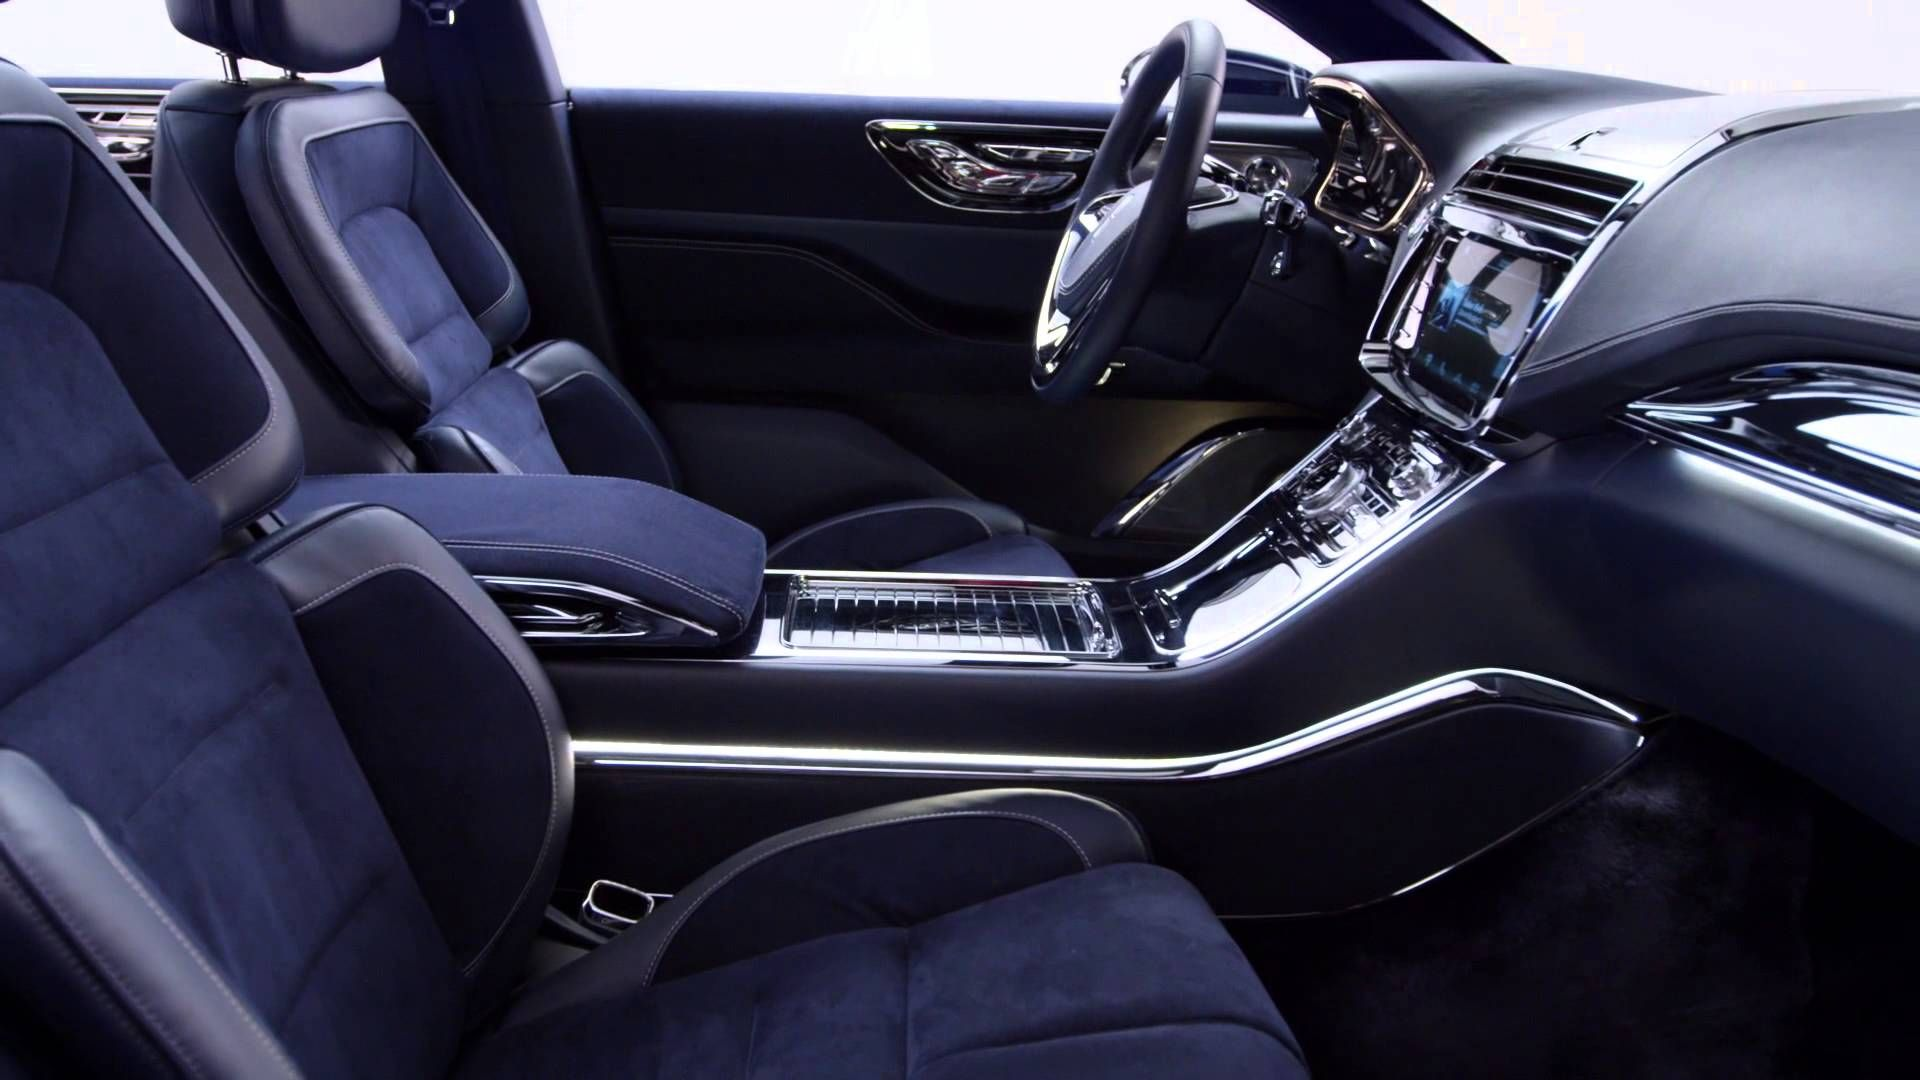 Fiounder S Court Luxe 2015 Lincoln Continental Concept Interior